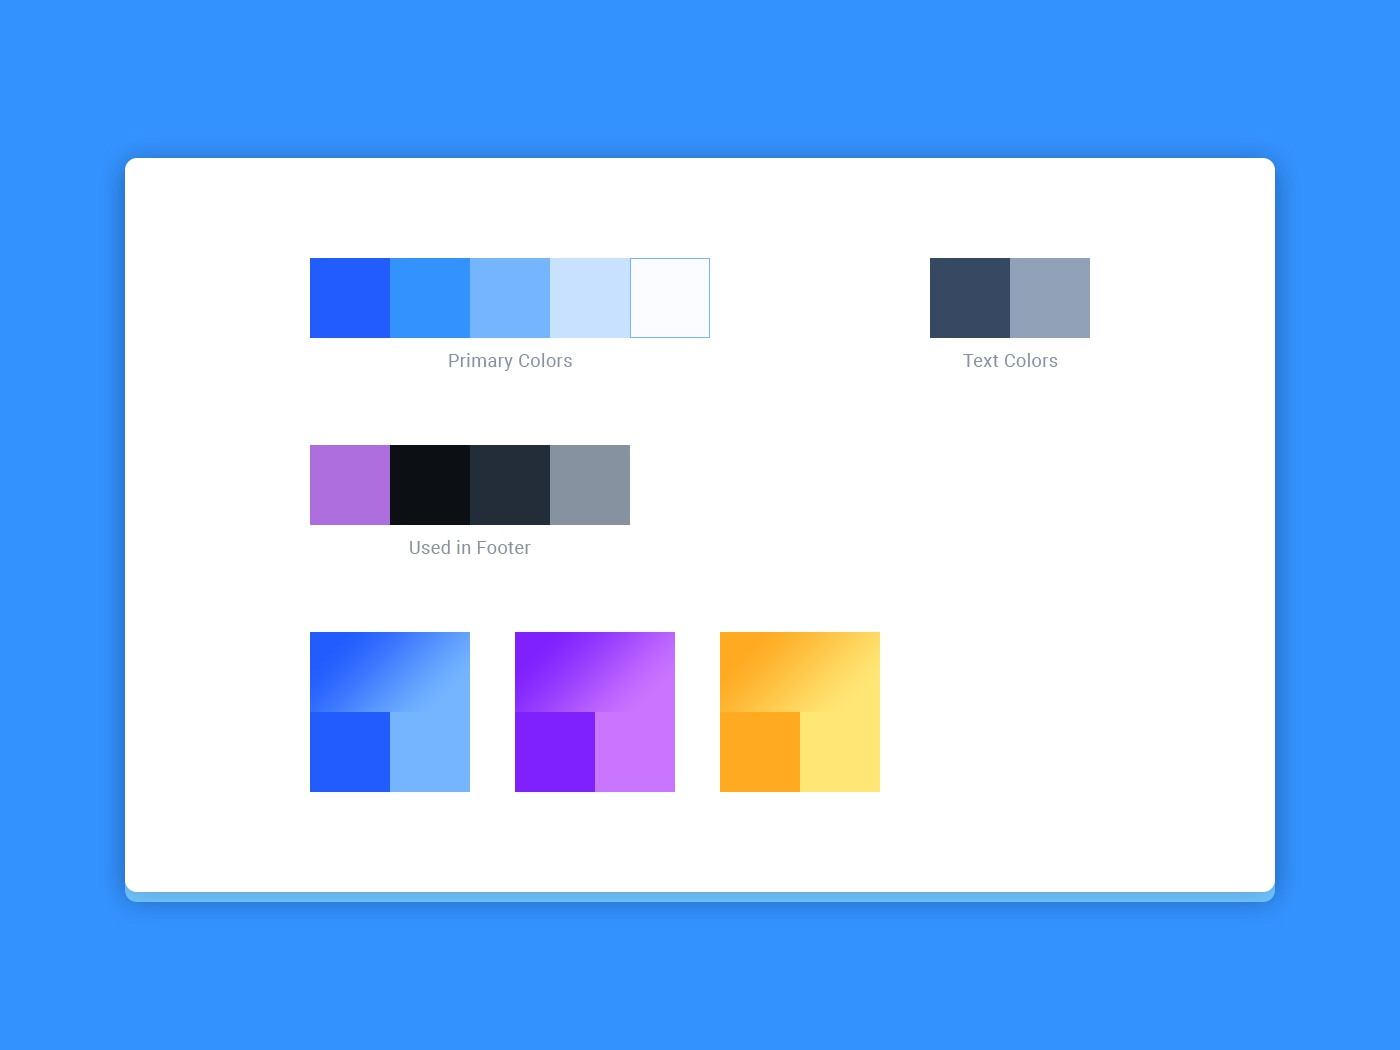 Skrign color guide designsystem styleguide colors color design inspiration prototype website design website designer design wireframe ui ux design ux design ui design user experience user interface graphic design graphicdesign ux ui